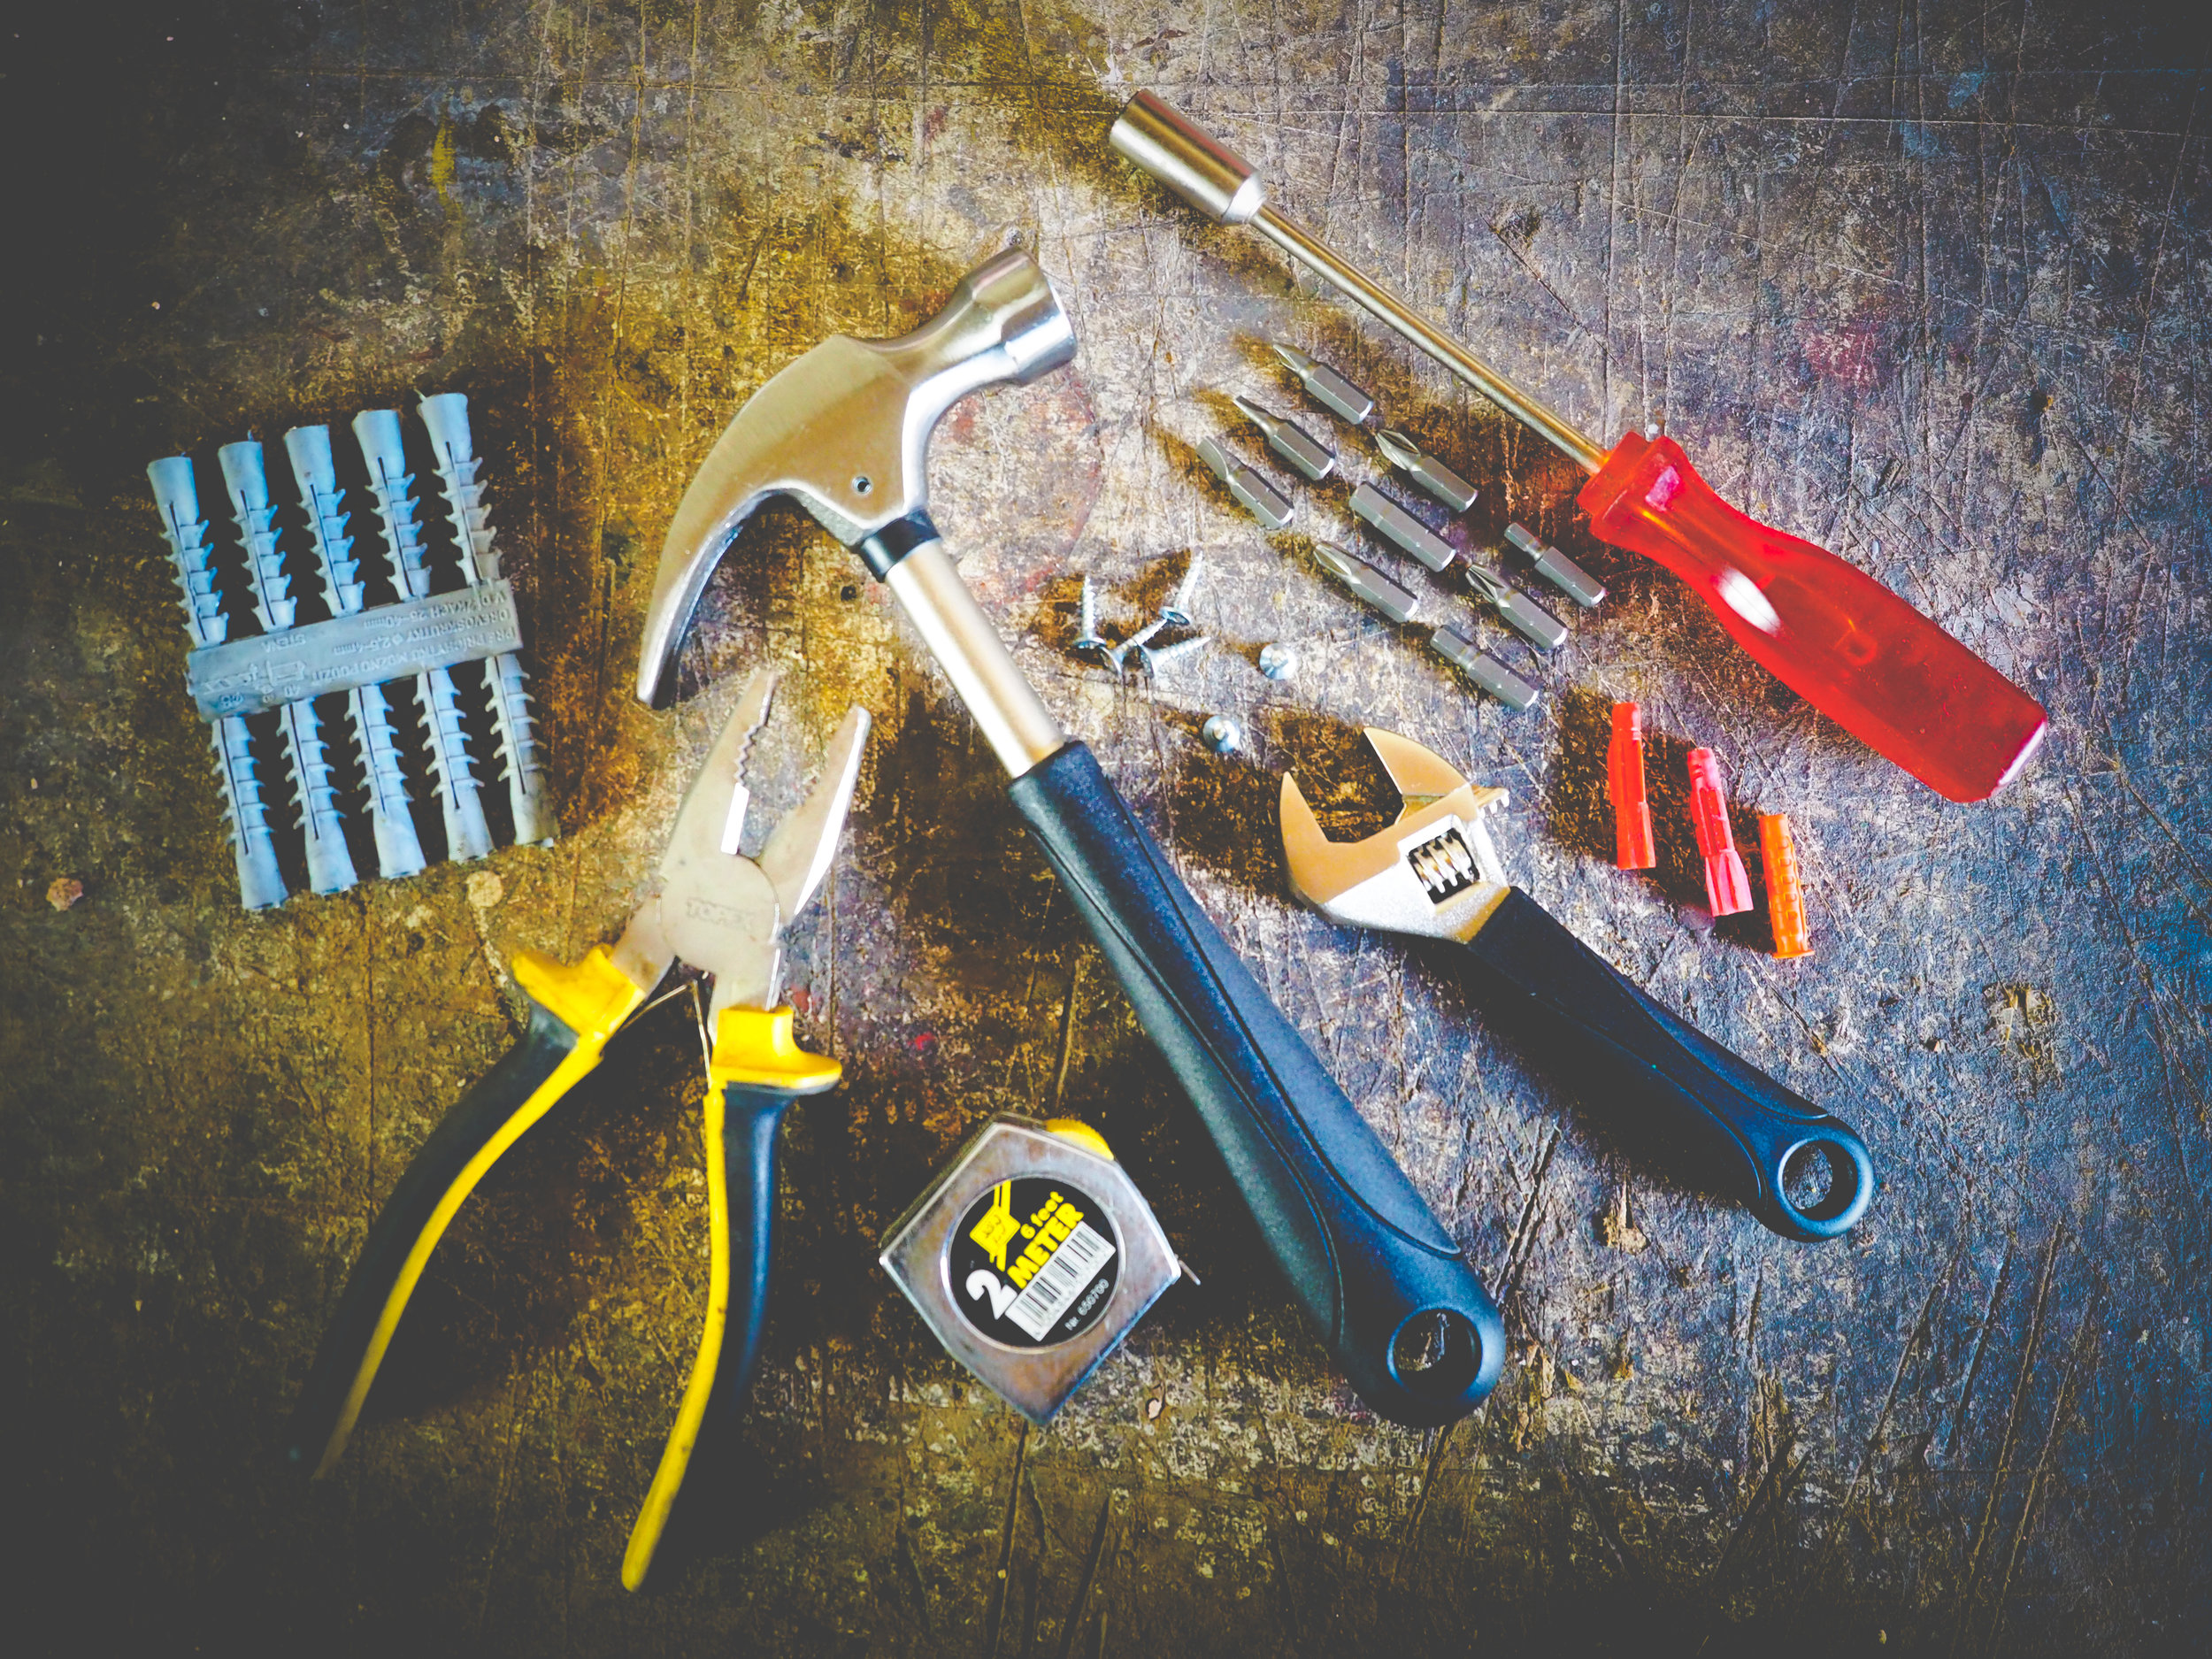 Maintenance Repair Person - Our center needs someone from time to time to help out with minor maintenance and repairs. From changing light bulbs and washing windows, to repairing office furnishings and equipment; we need someone who can take care of us. If this is where your gifted, we need you!